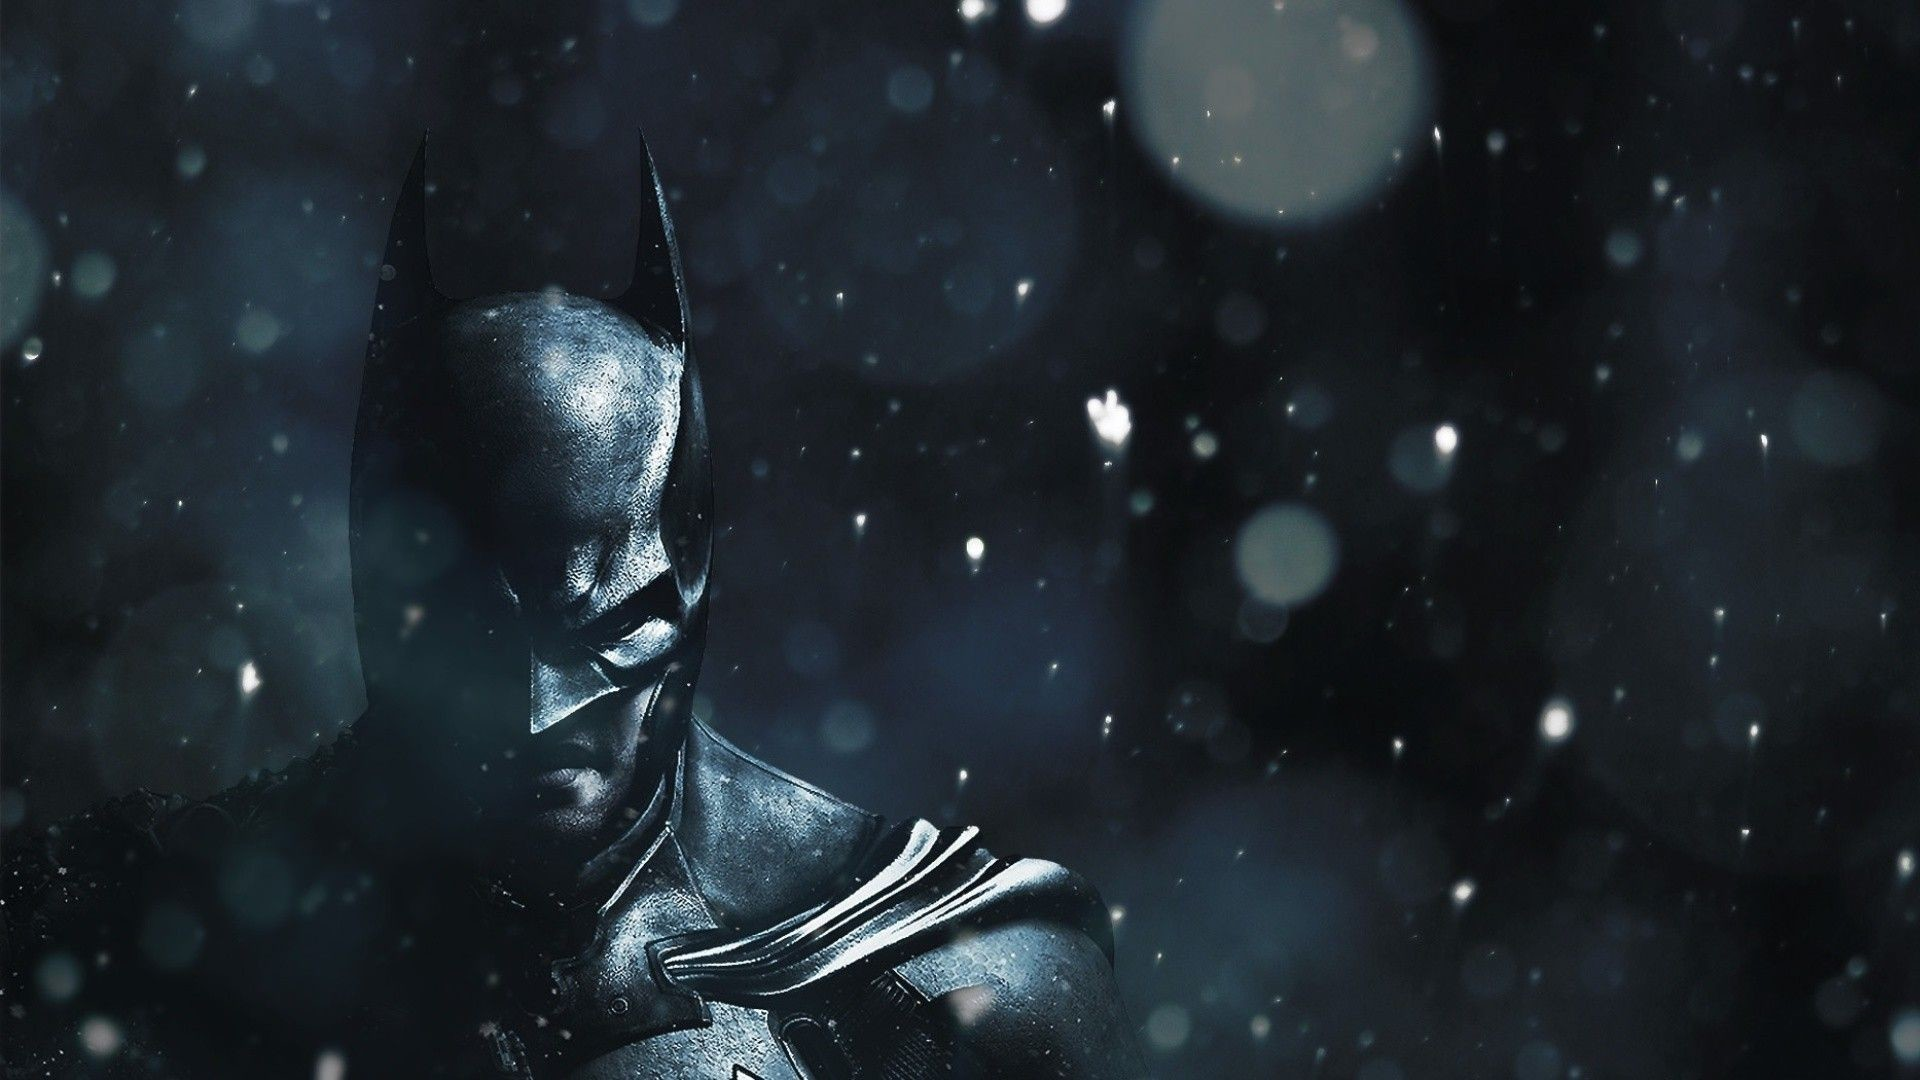 Res: 1920x1080, PC  px Batman HD Wallpaper, Wallpapers and Pictures for PC & Mac,  Tablet